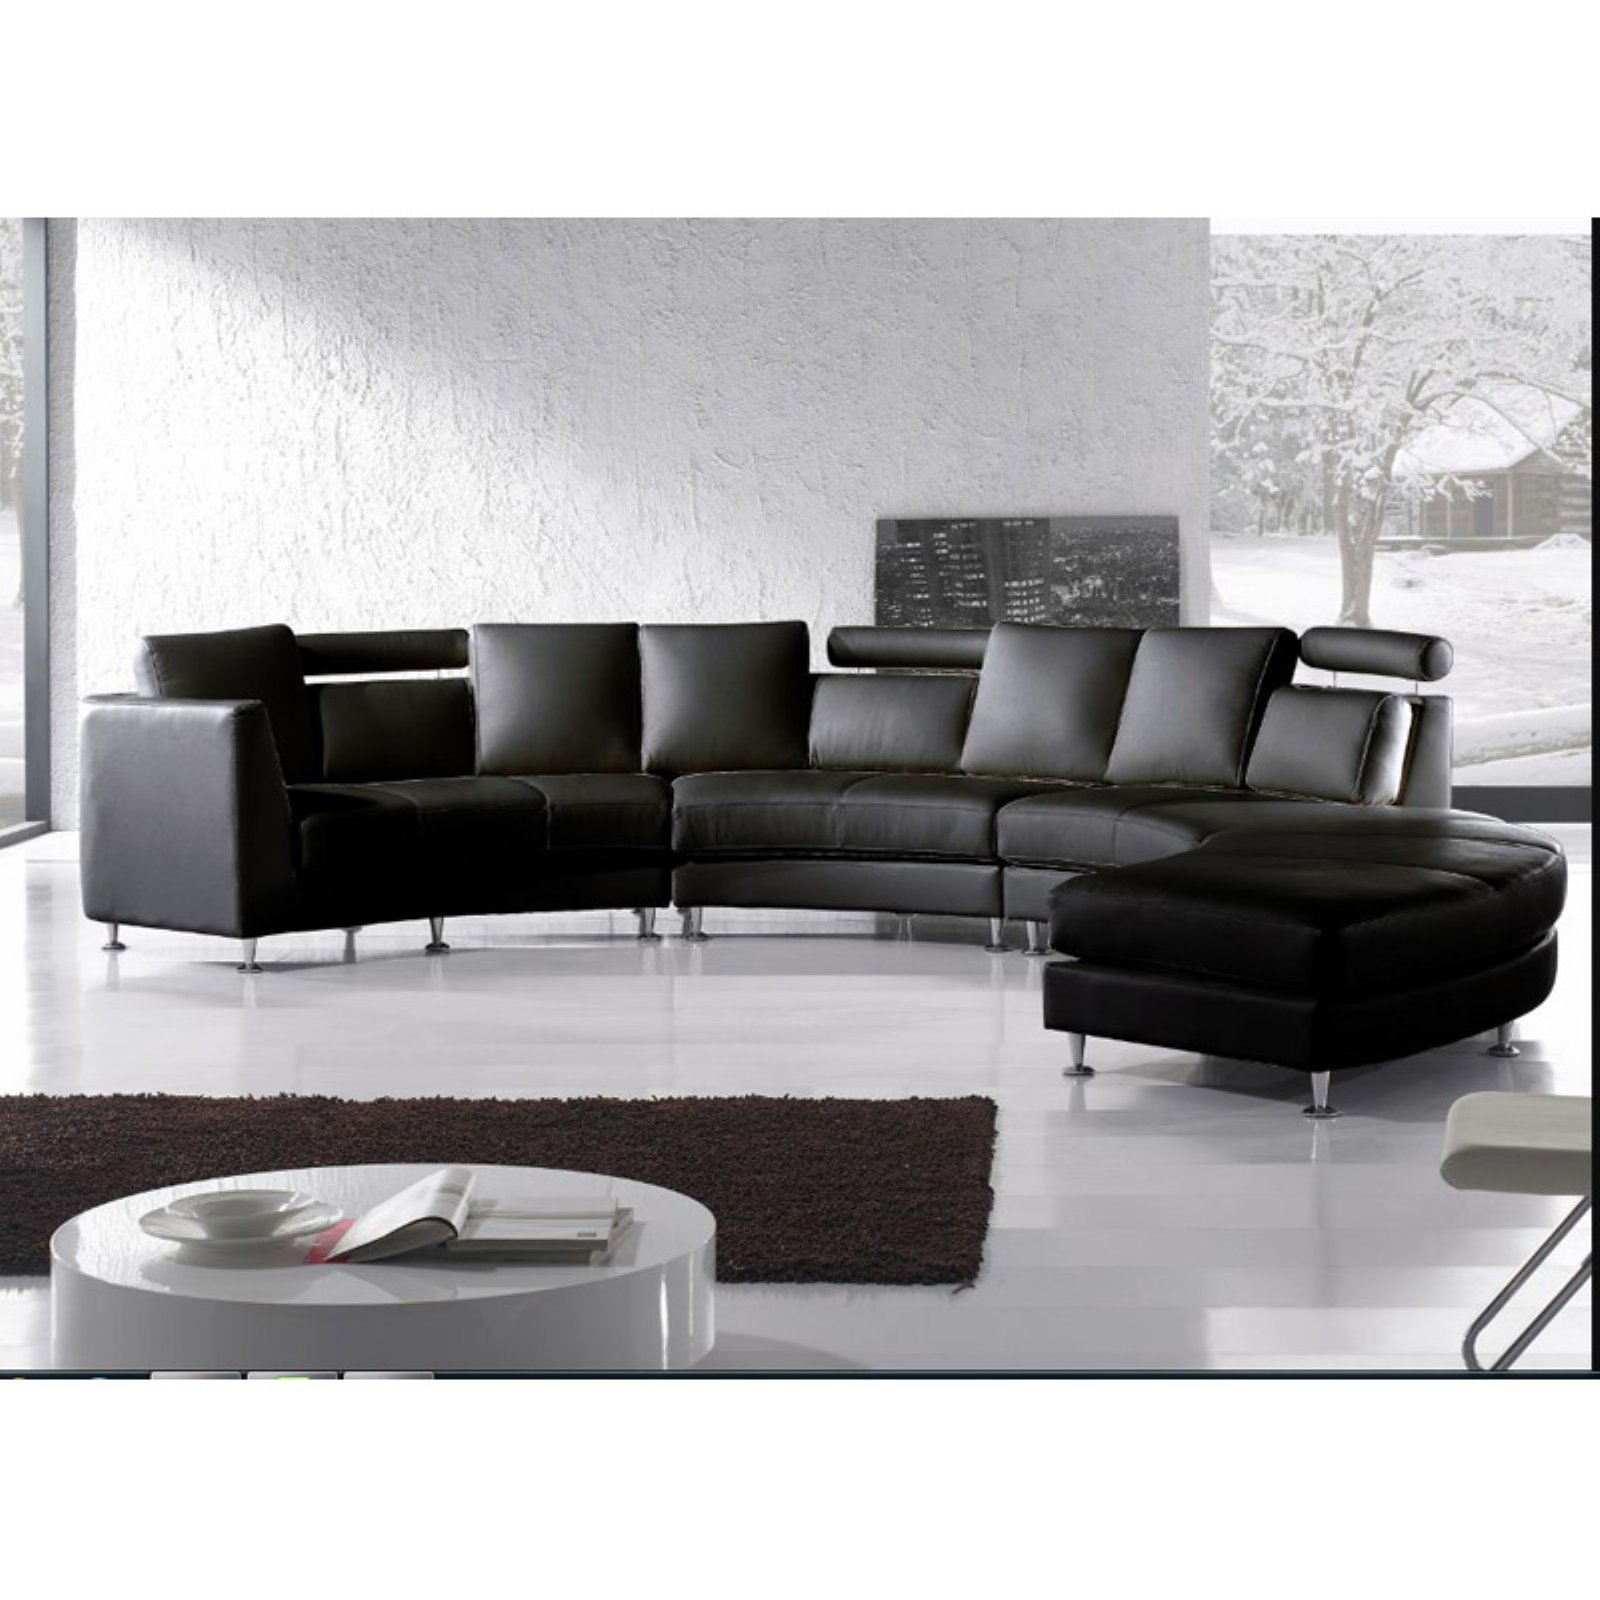 Velago Rotunde Modern Round Leather Sectional Sofa